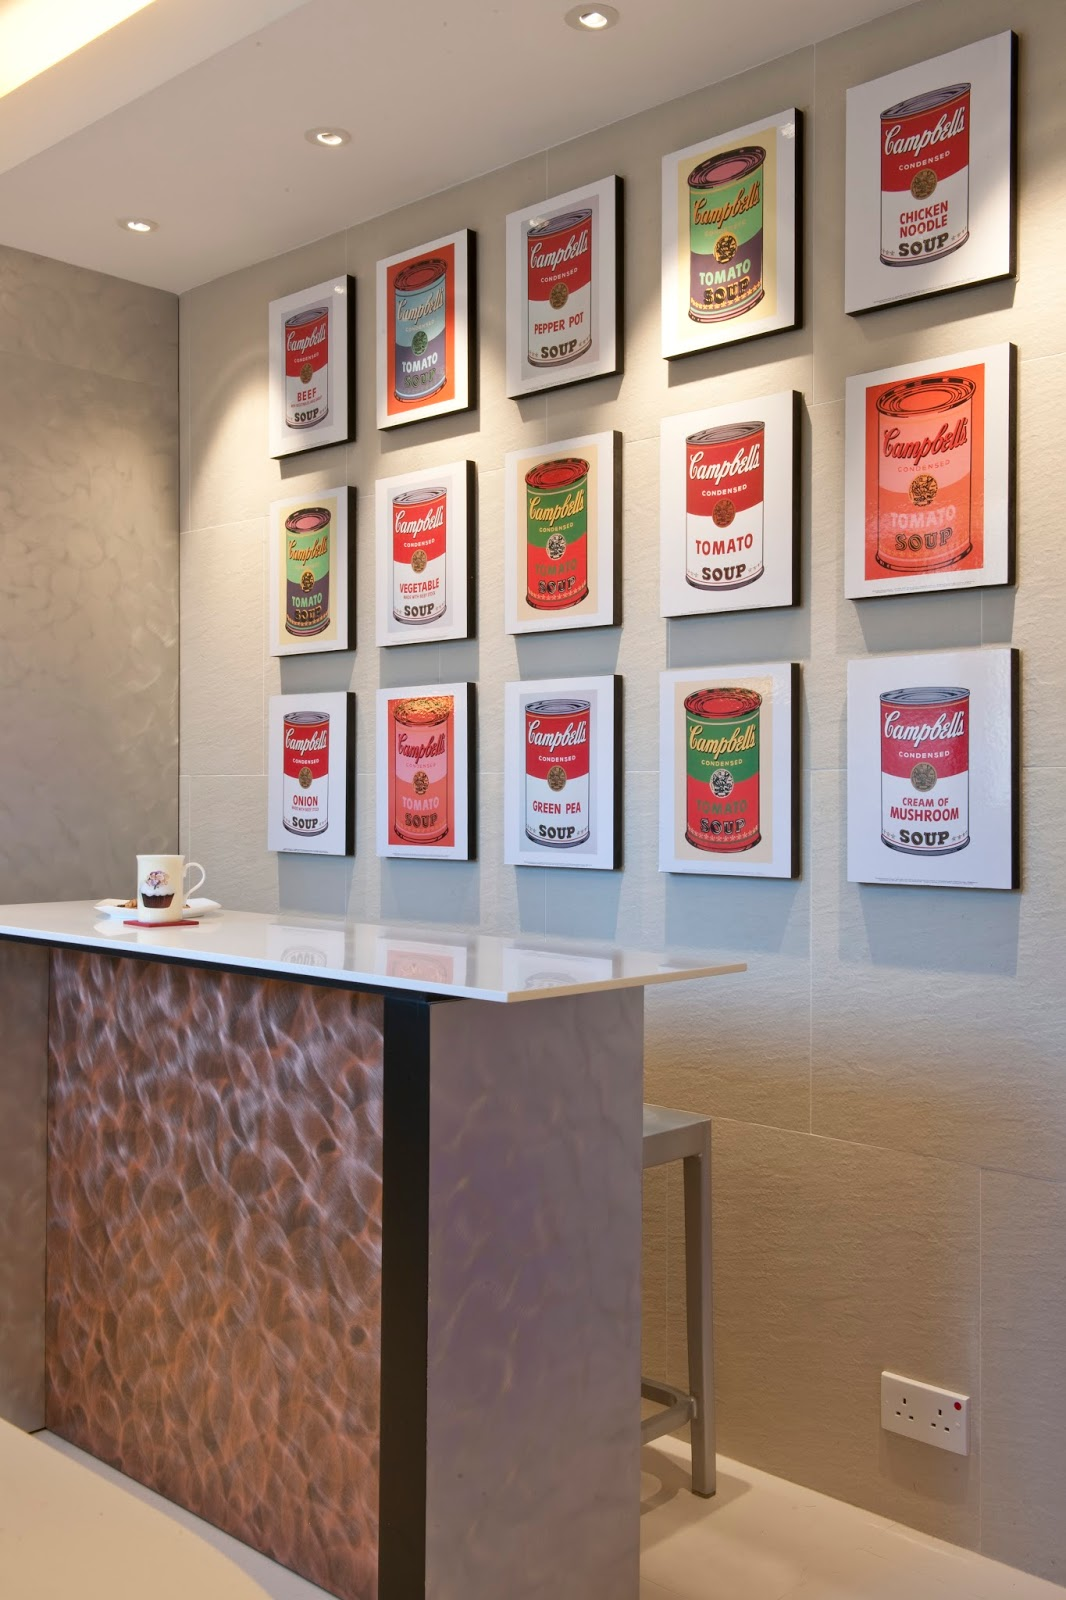 This clean and simple design allows andy warhols campbells soup cans one of the most famous pop art pieces in history to shine